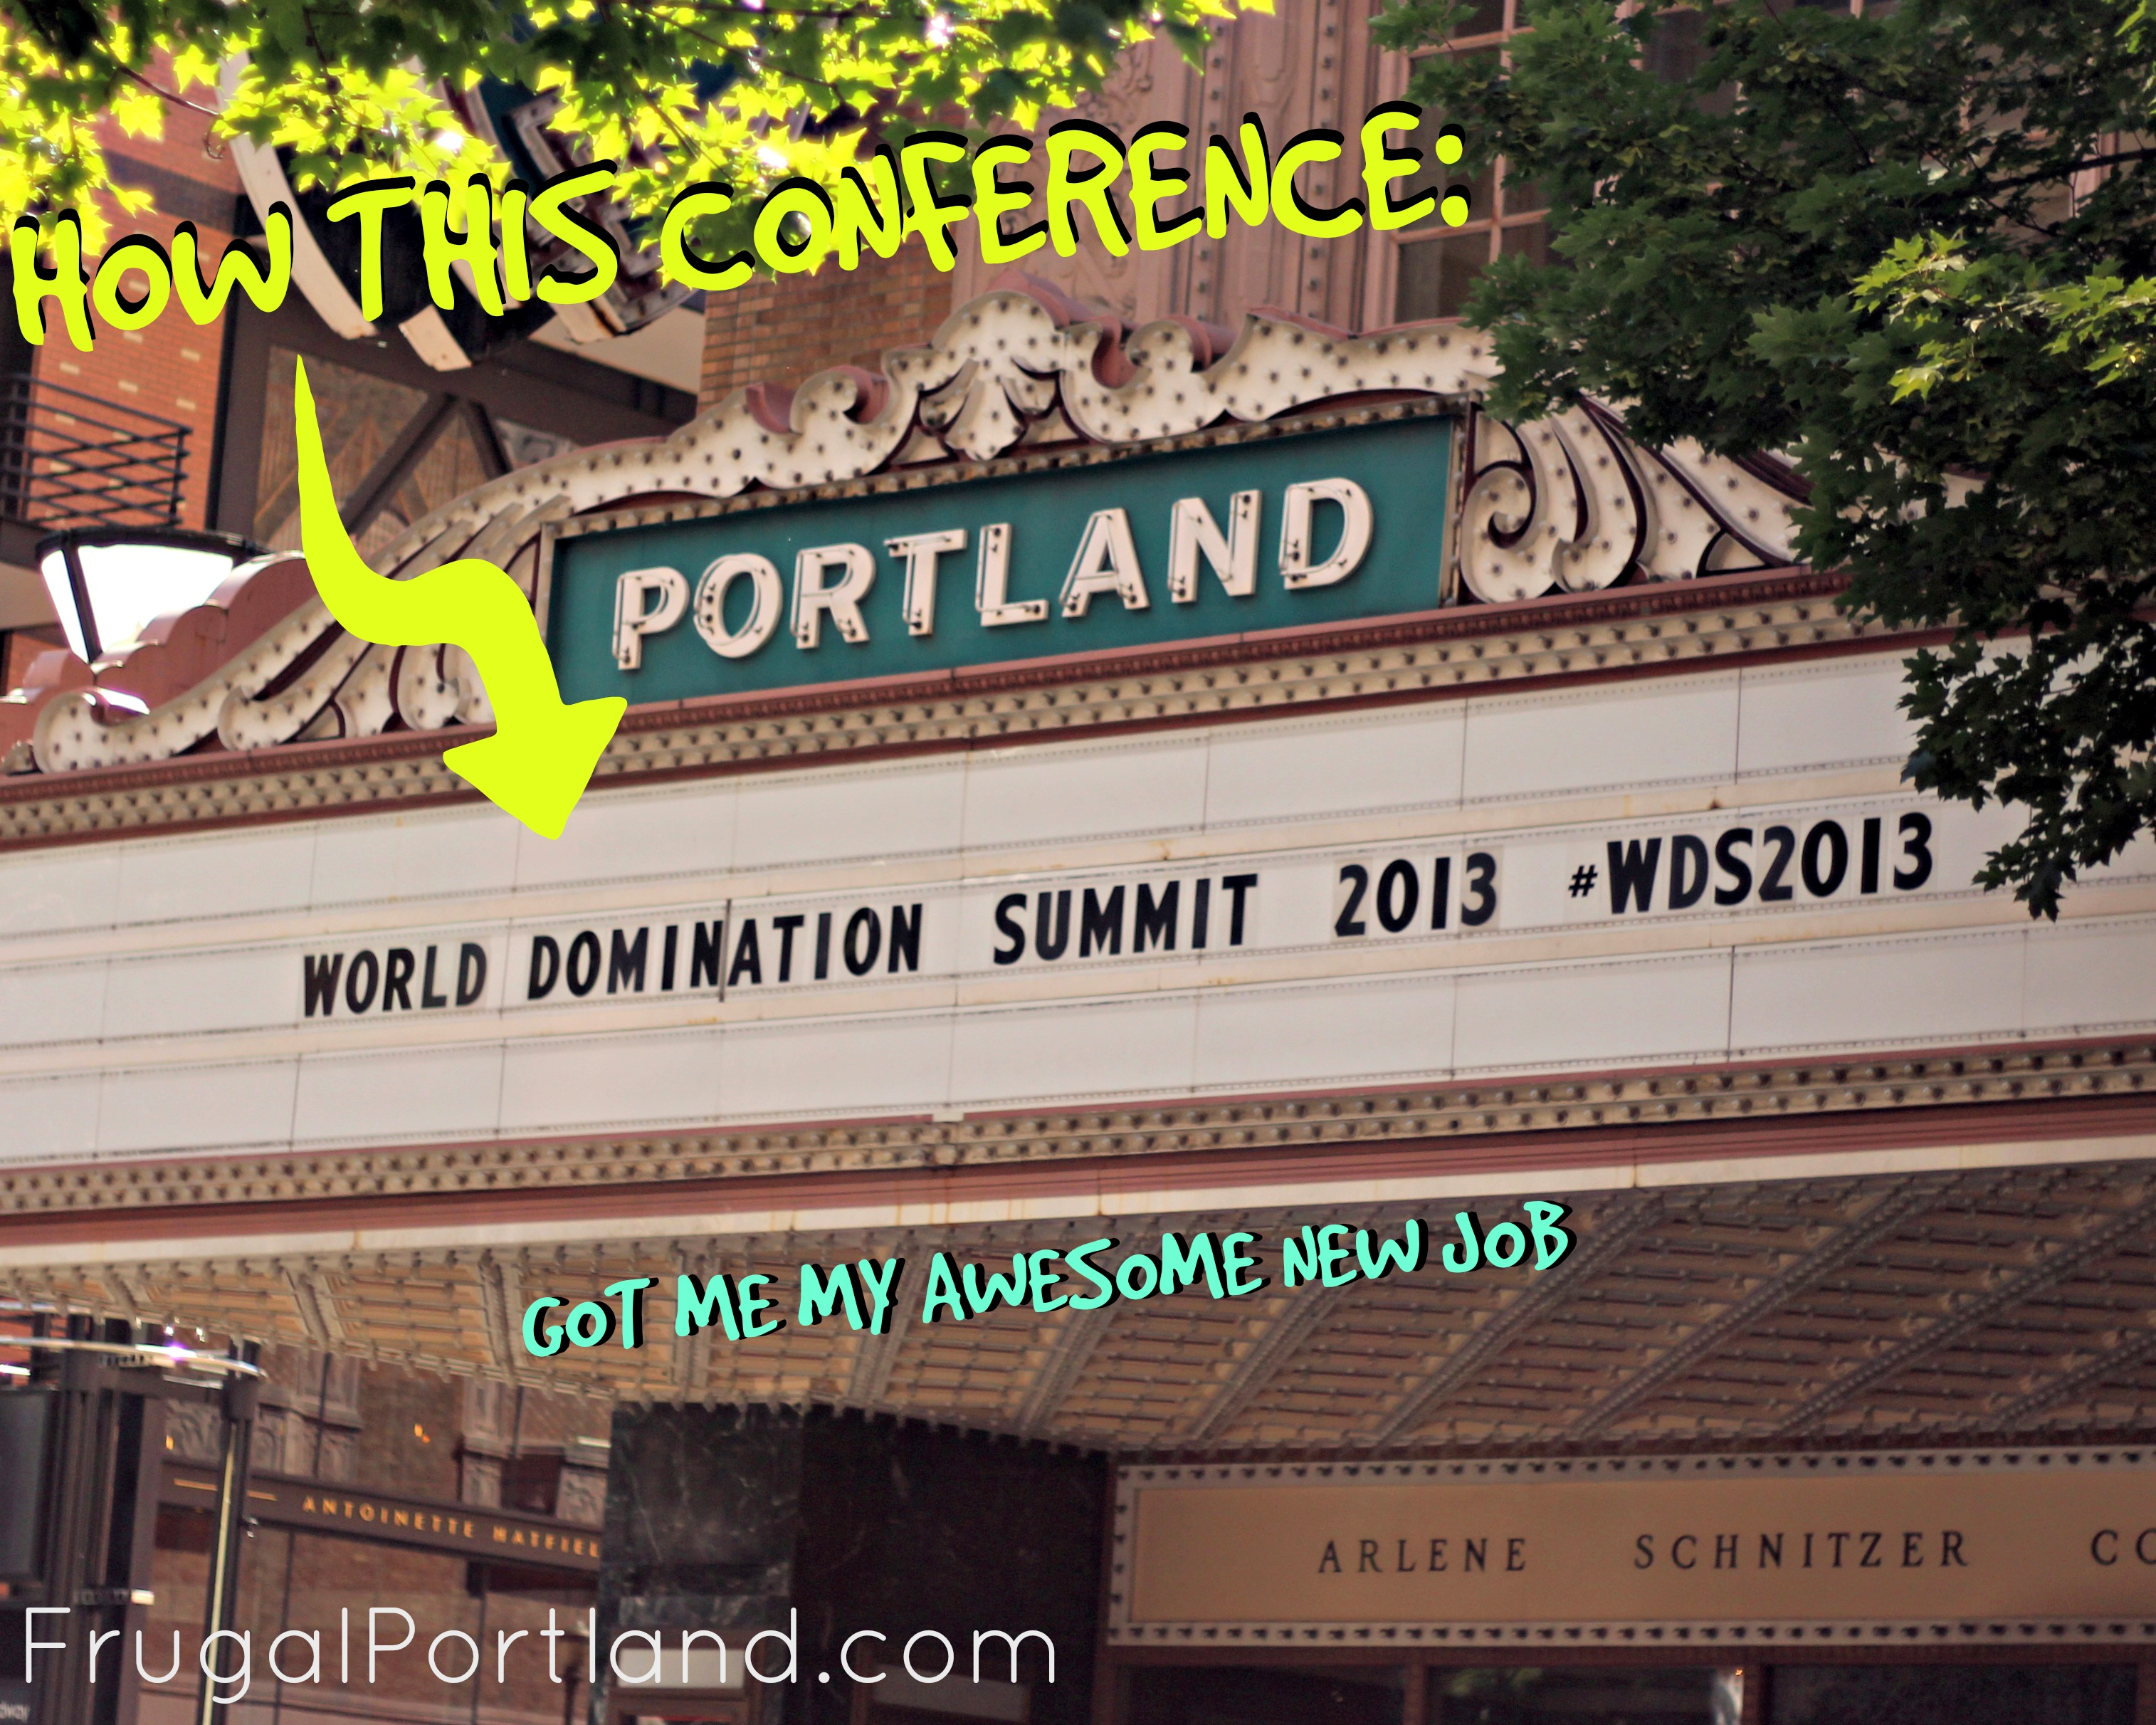 #WDS2013 helped me get my new job